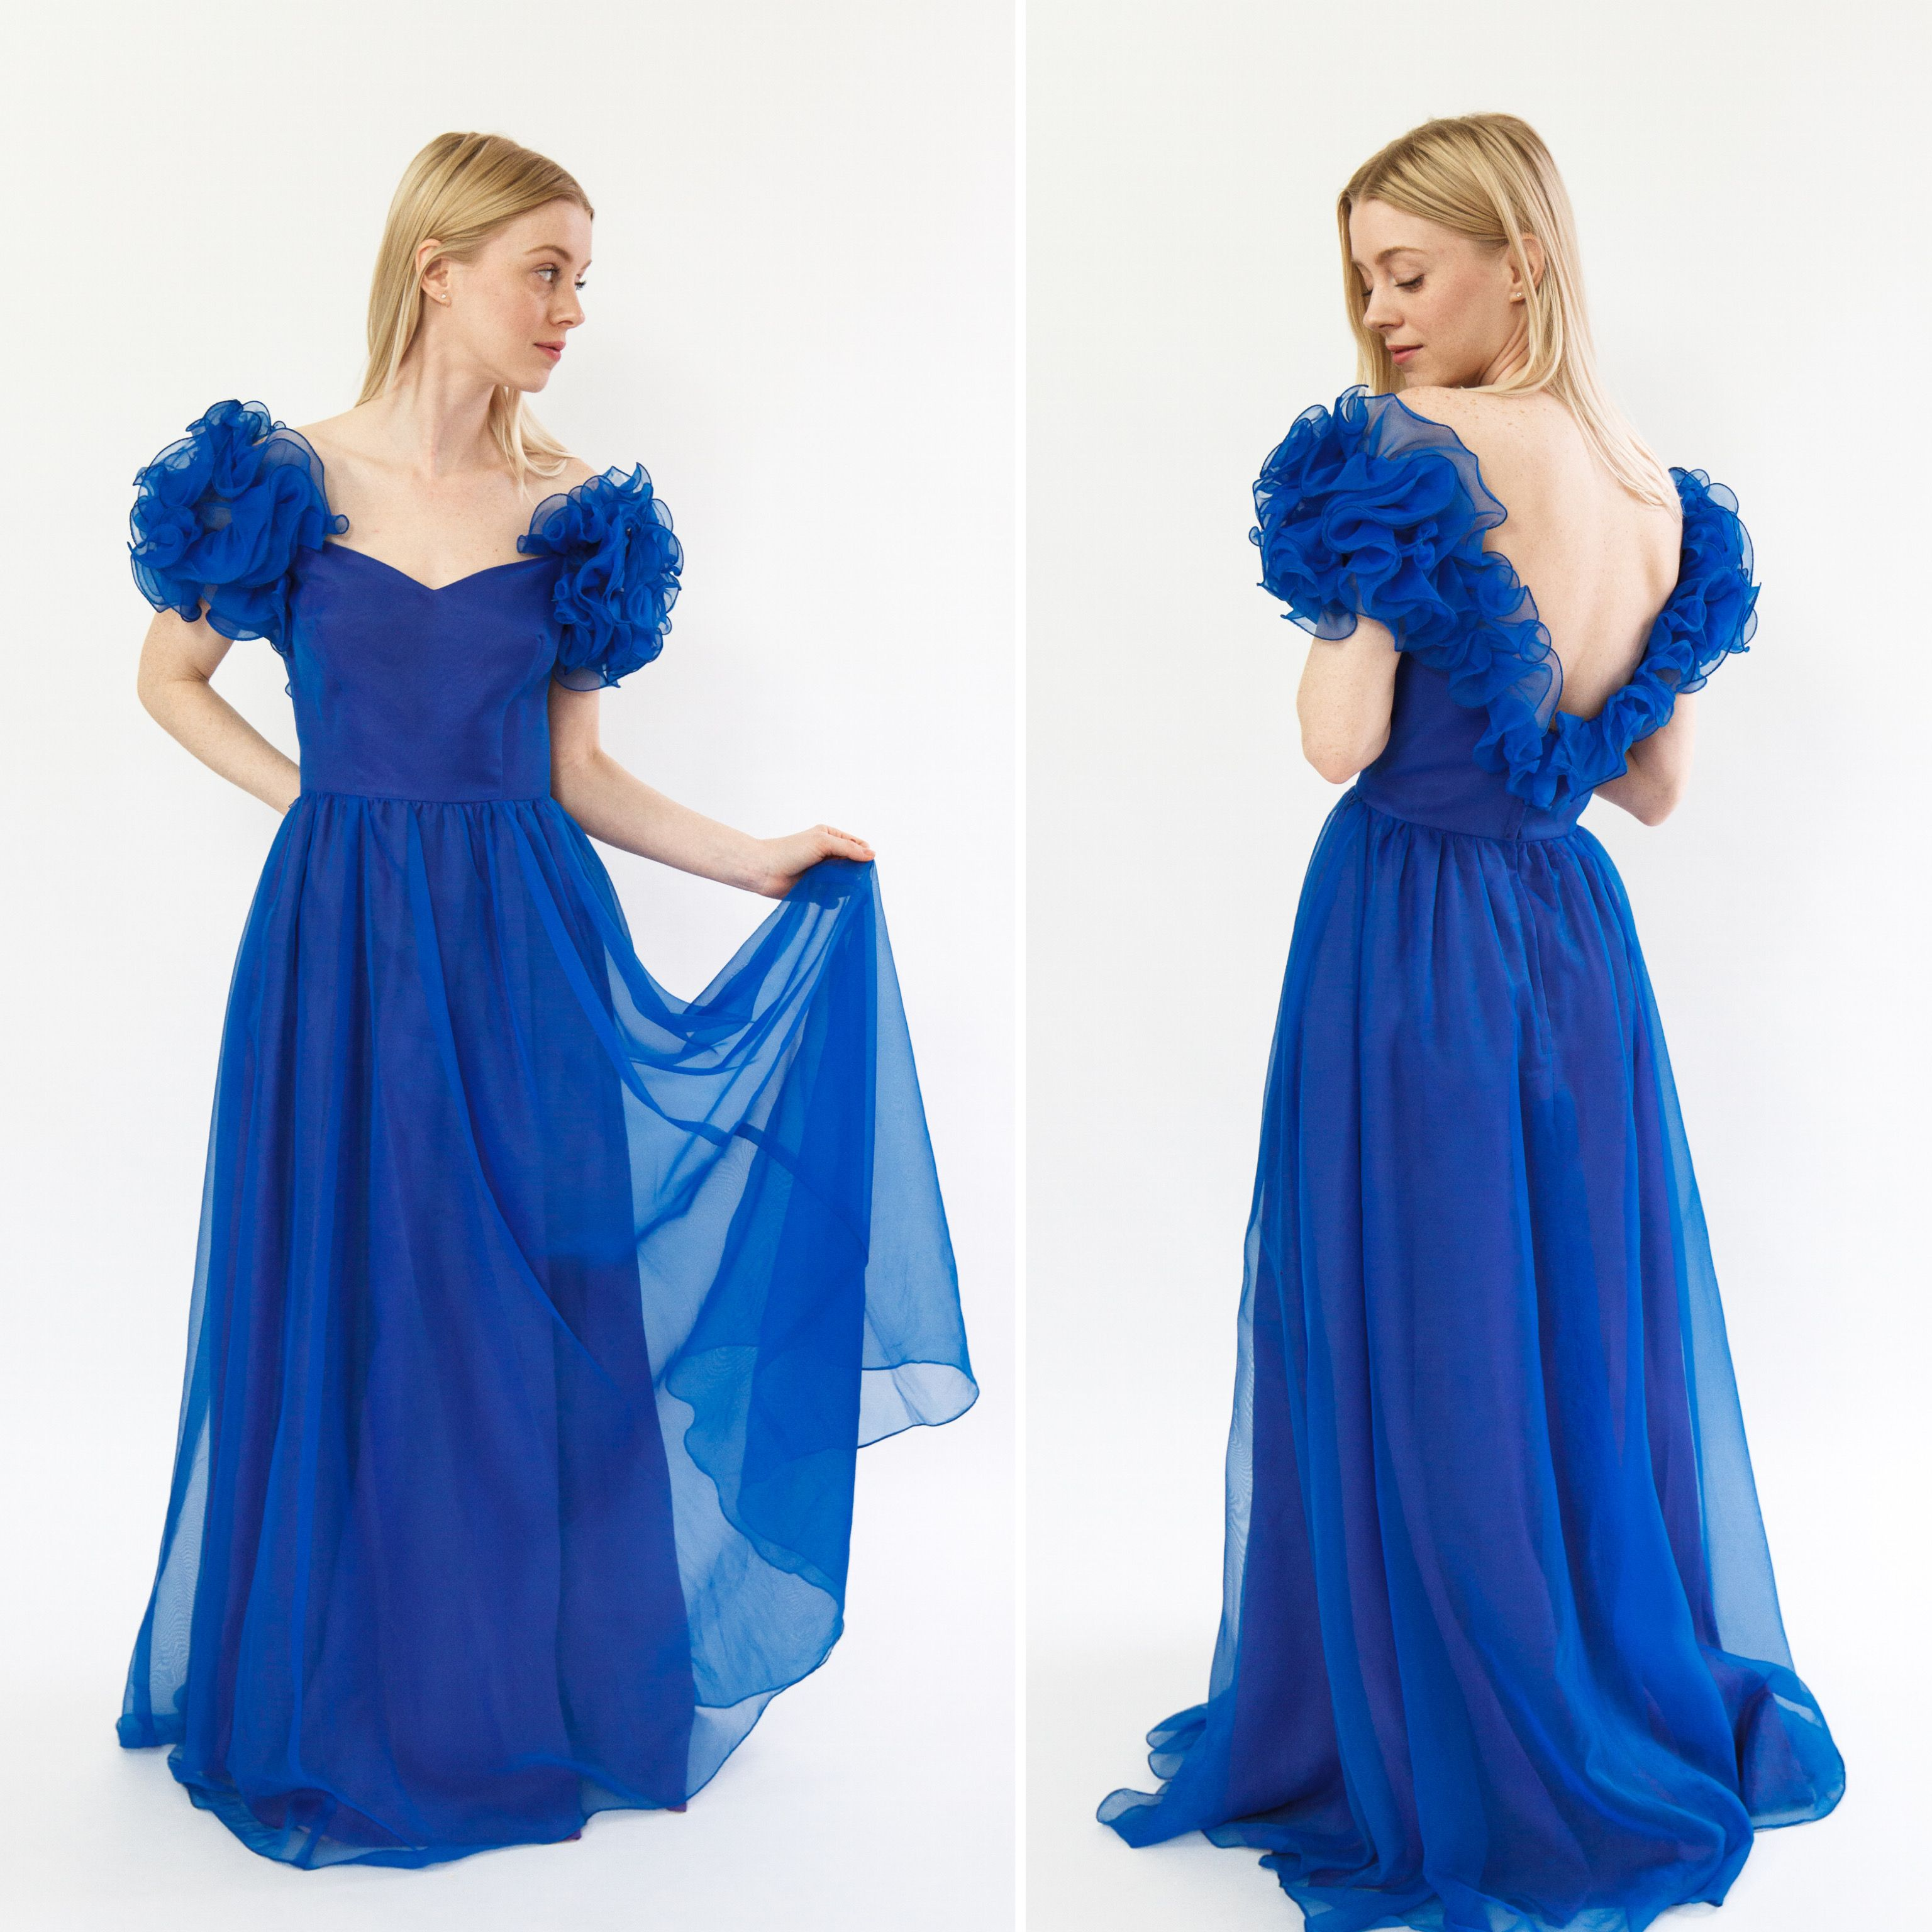 Vintage 1980s dress 80s ball gown 1980s prom dress